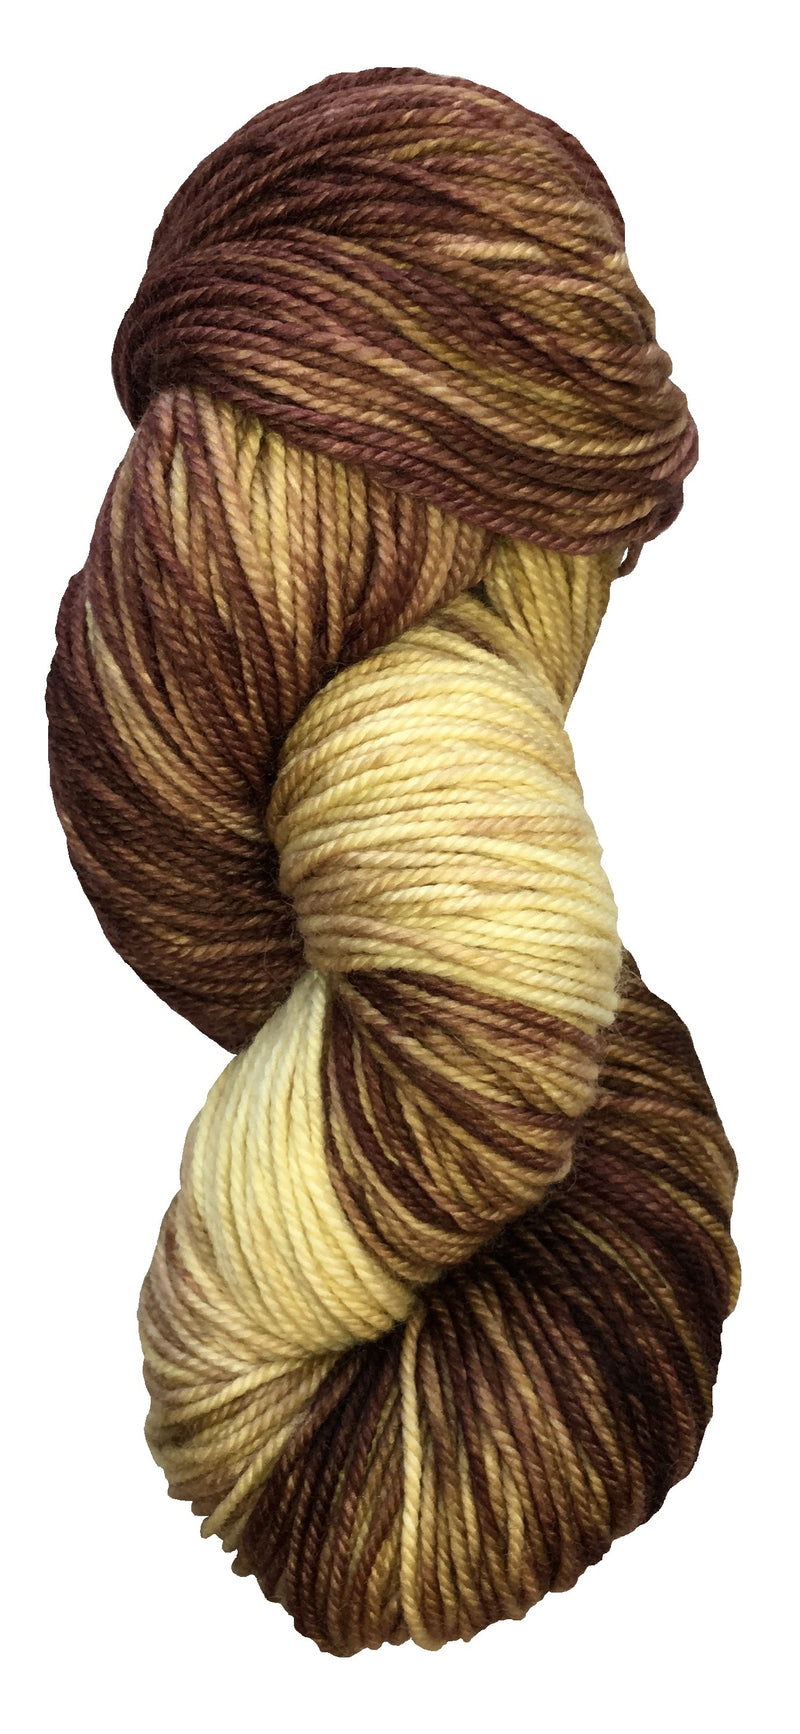 Sugar Bush Yarns Festivity Canadian yarn with Superwash Merino wool-Nylon blend